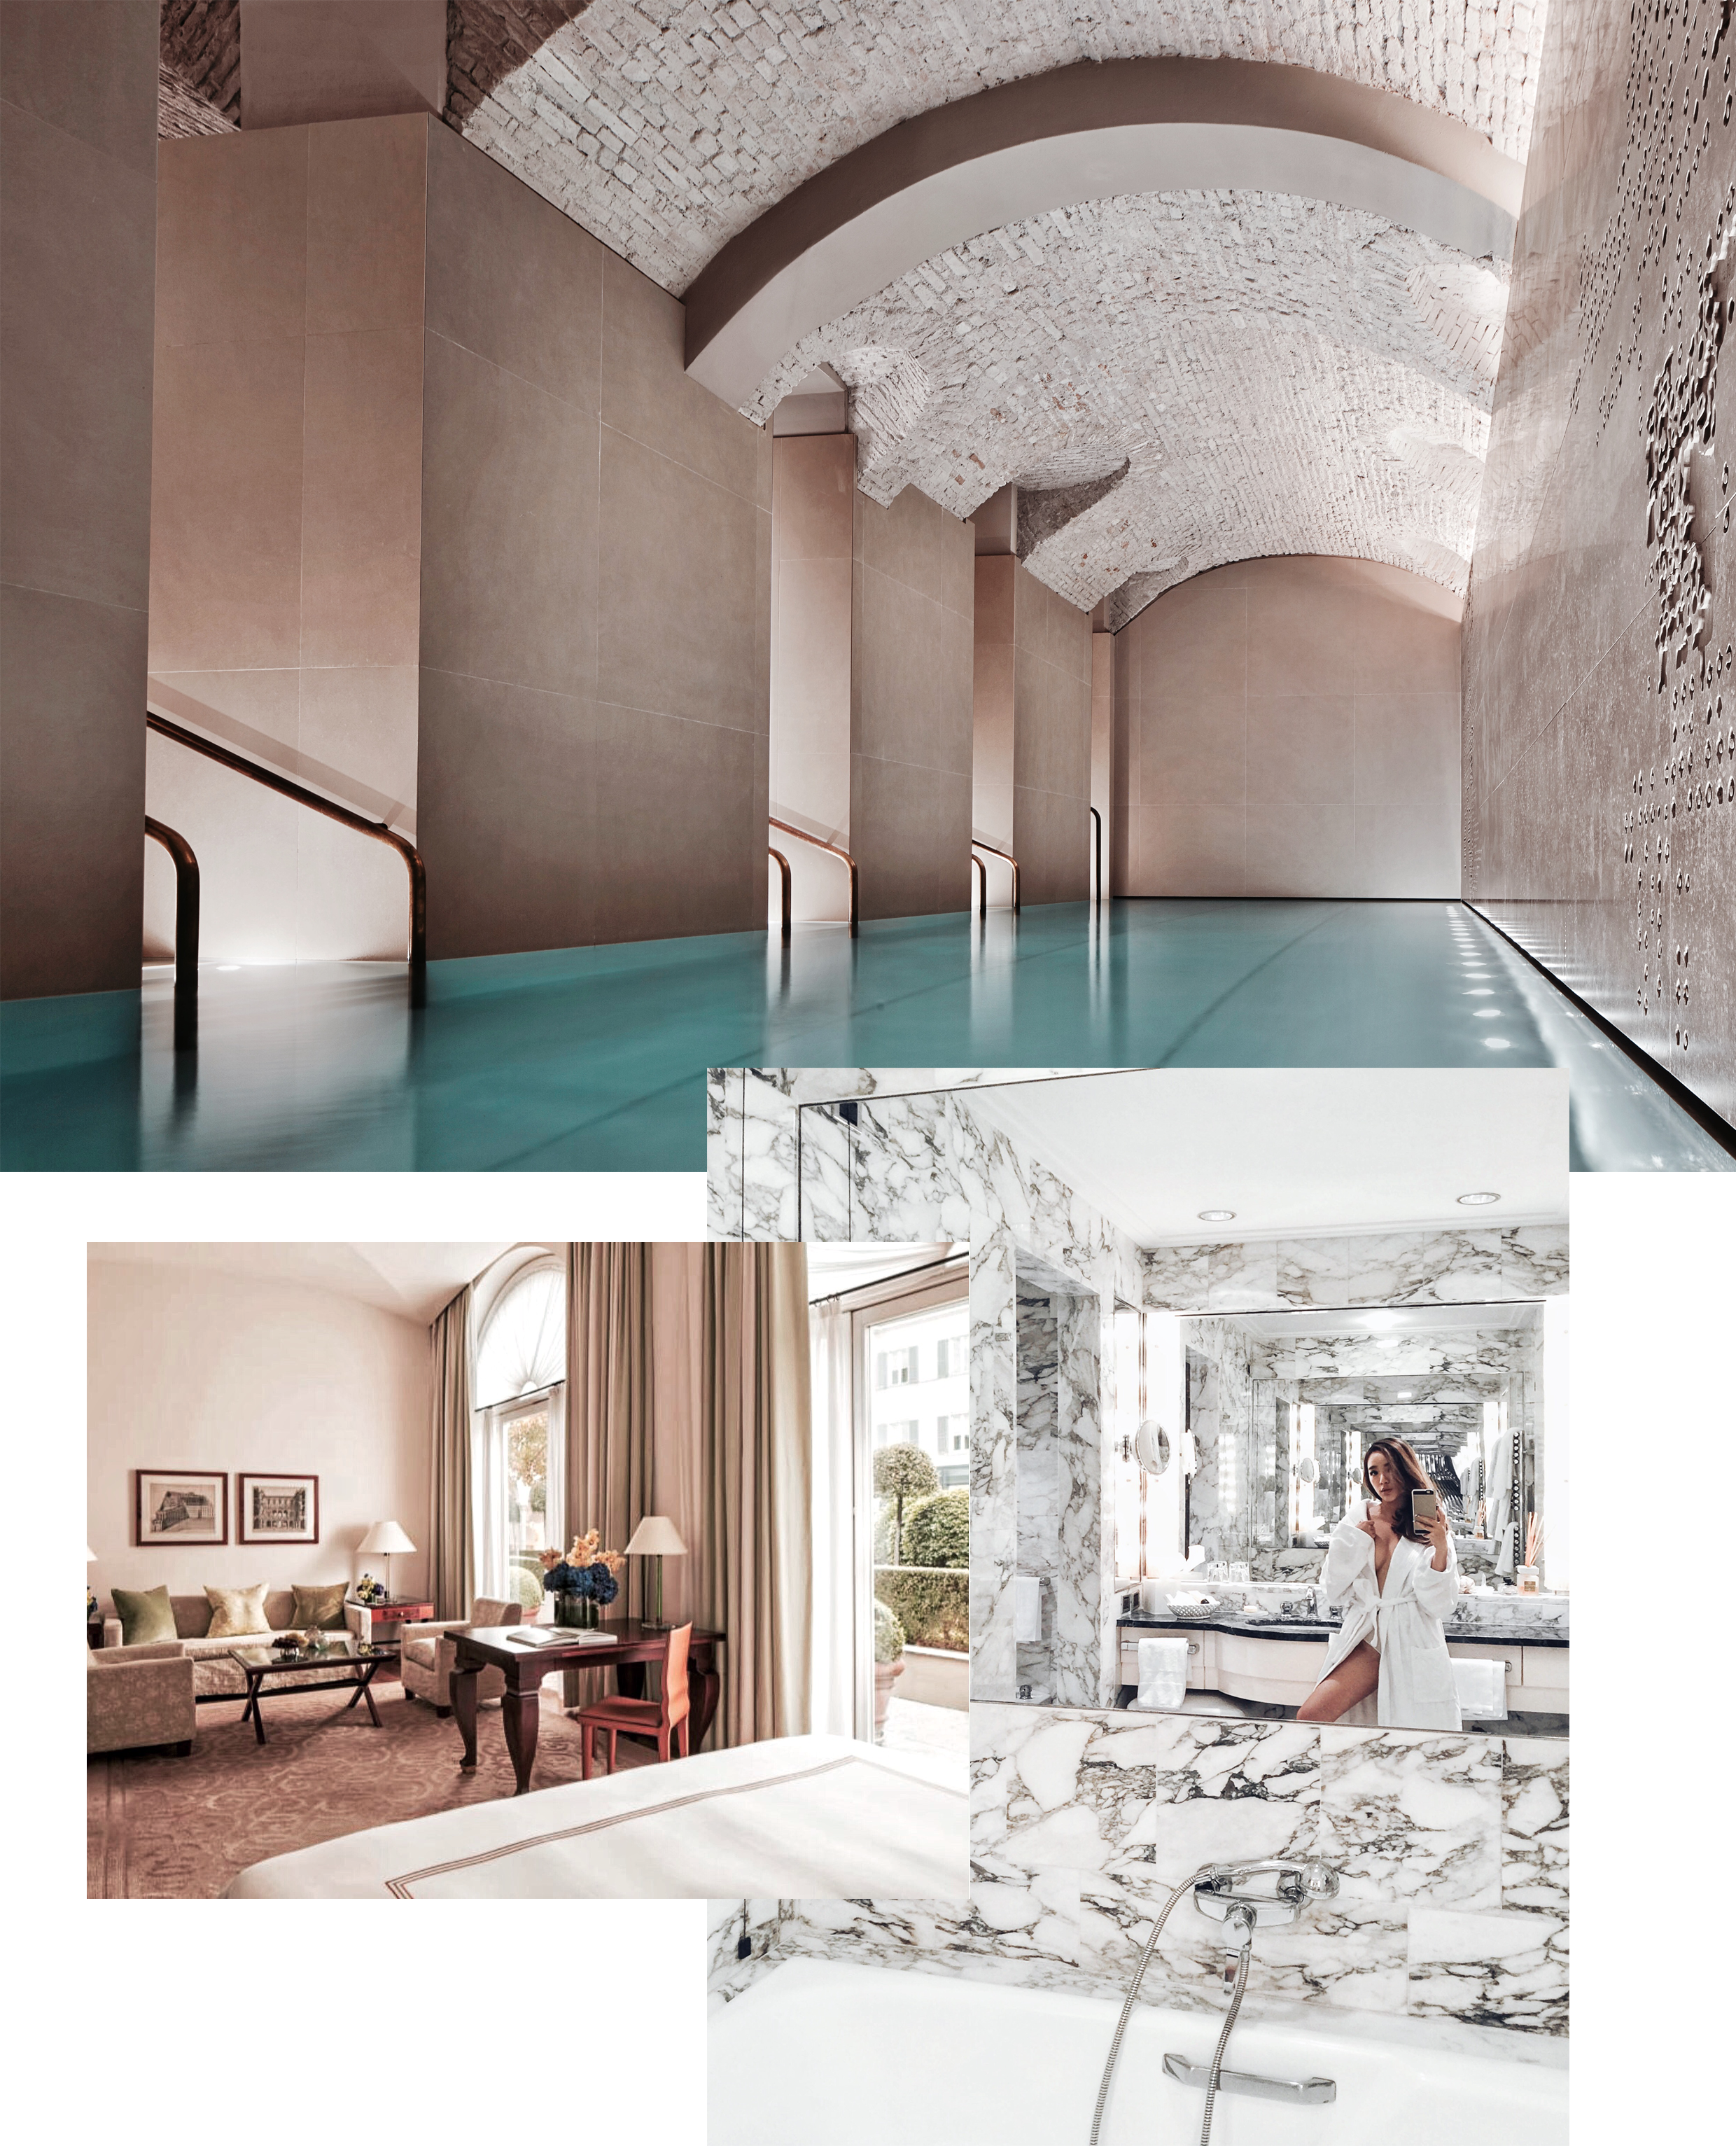 willabelle-ong-paledivision-street-style-fashion-travel-lifestyle-blog-australia-singapore-blogger-italy-cuisine-review-four-seasons-hotel-milan-spa-pool-marble